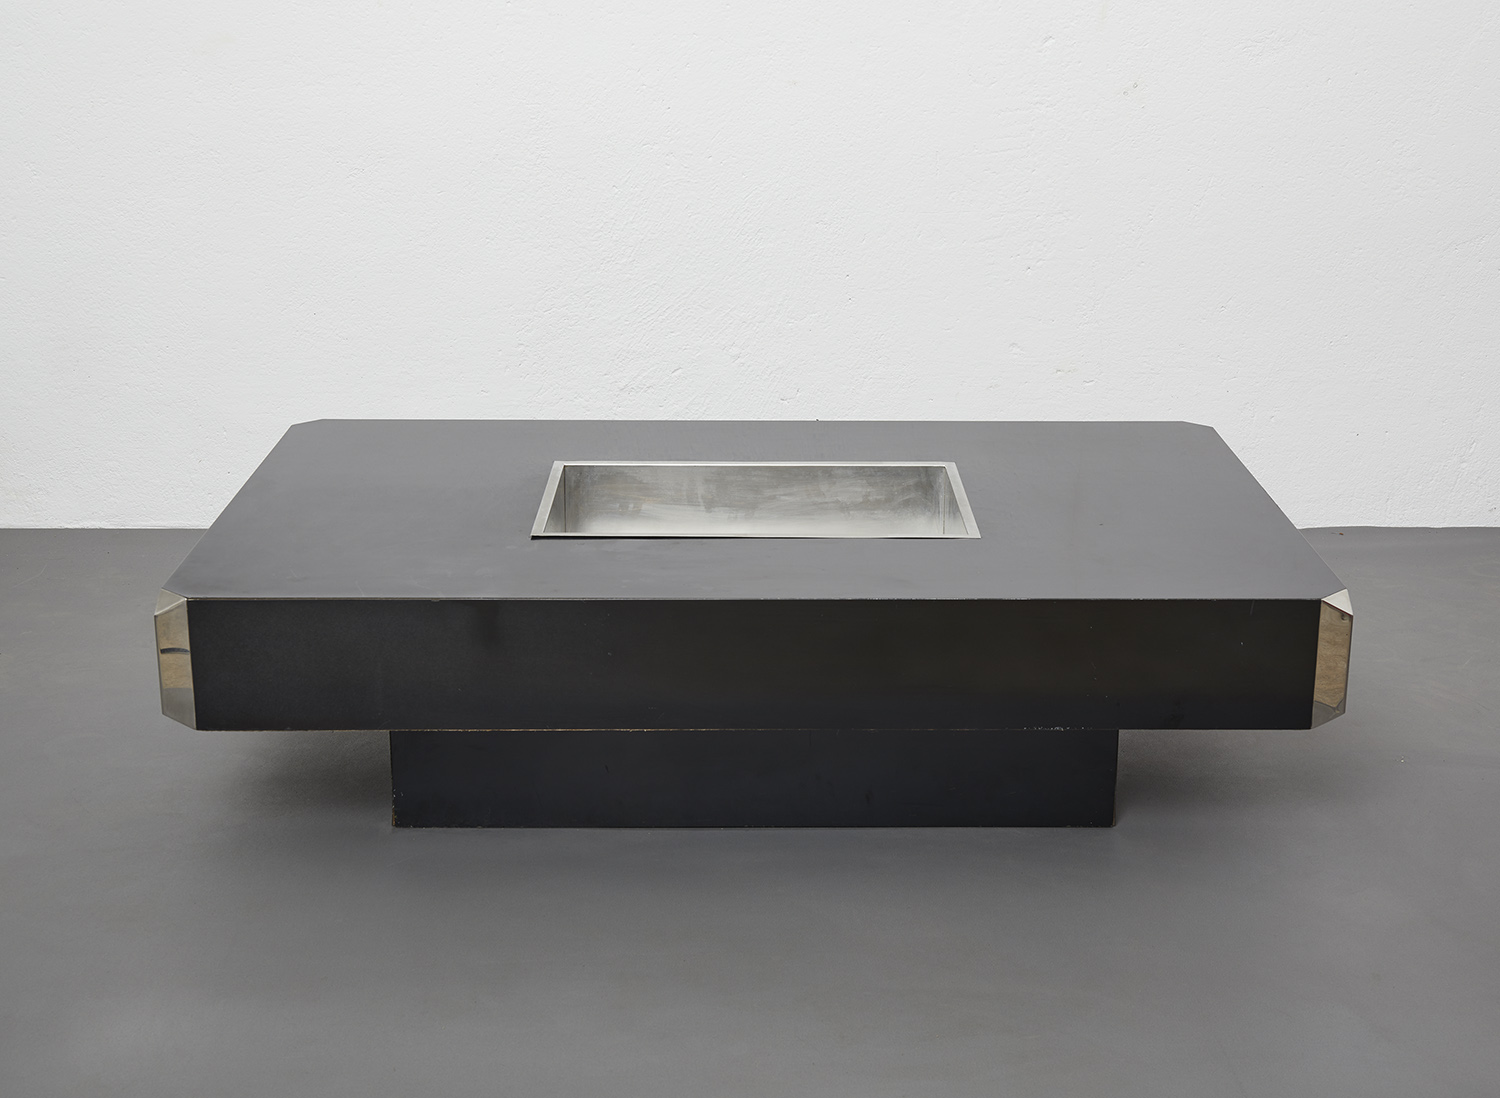 alveo-table-by-willy-rizzo-c-1970-image-01